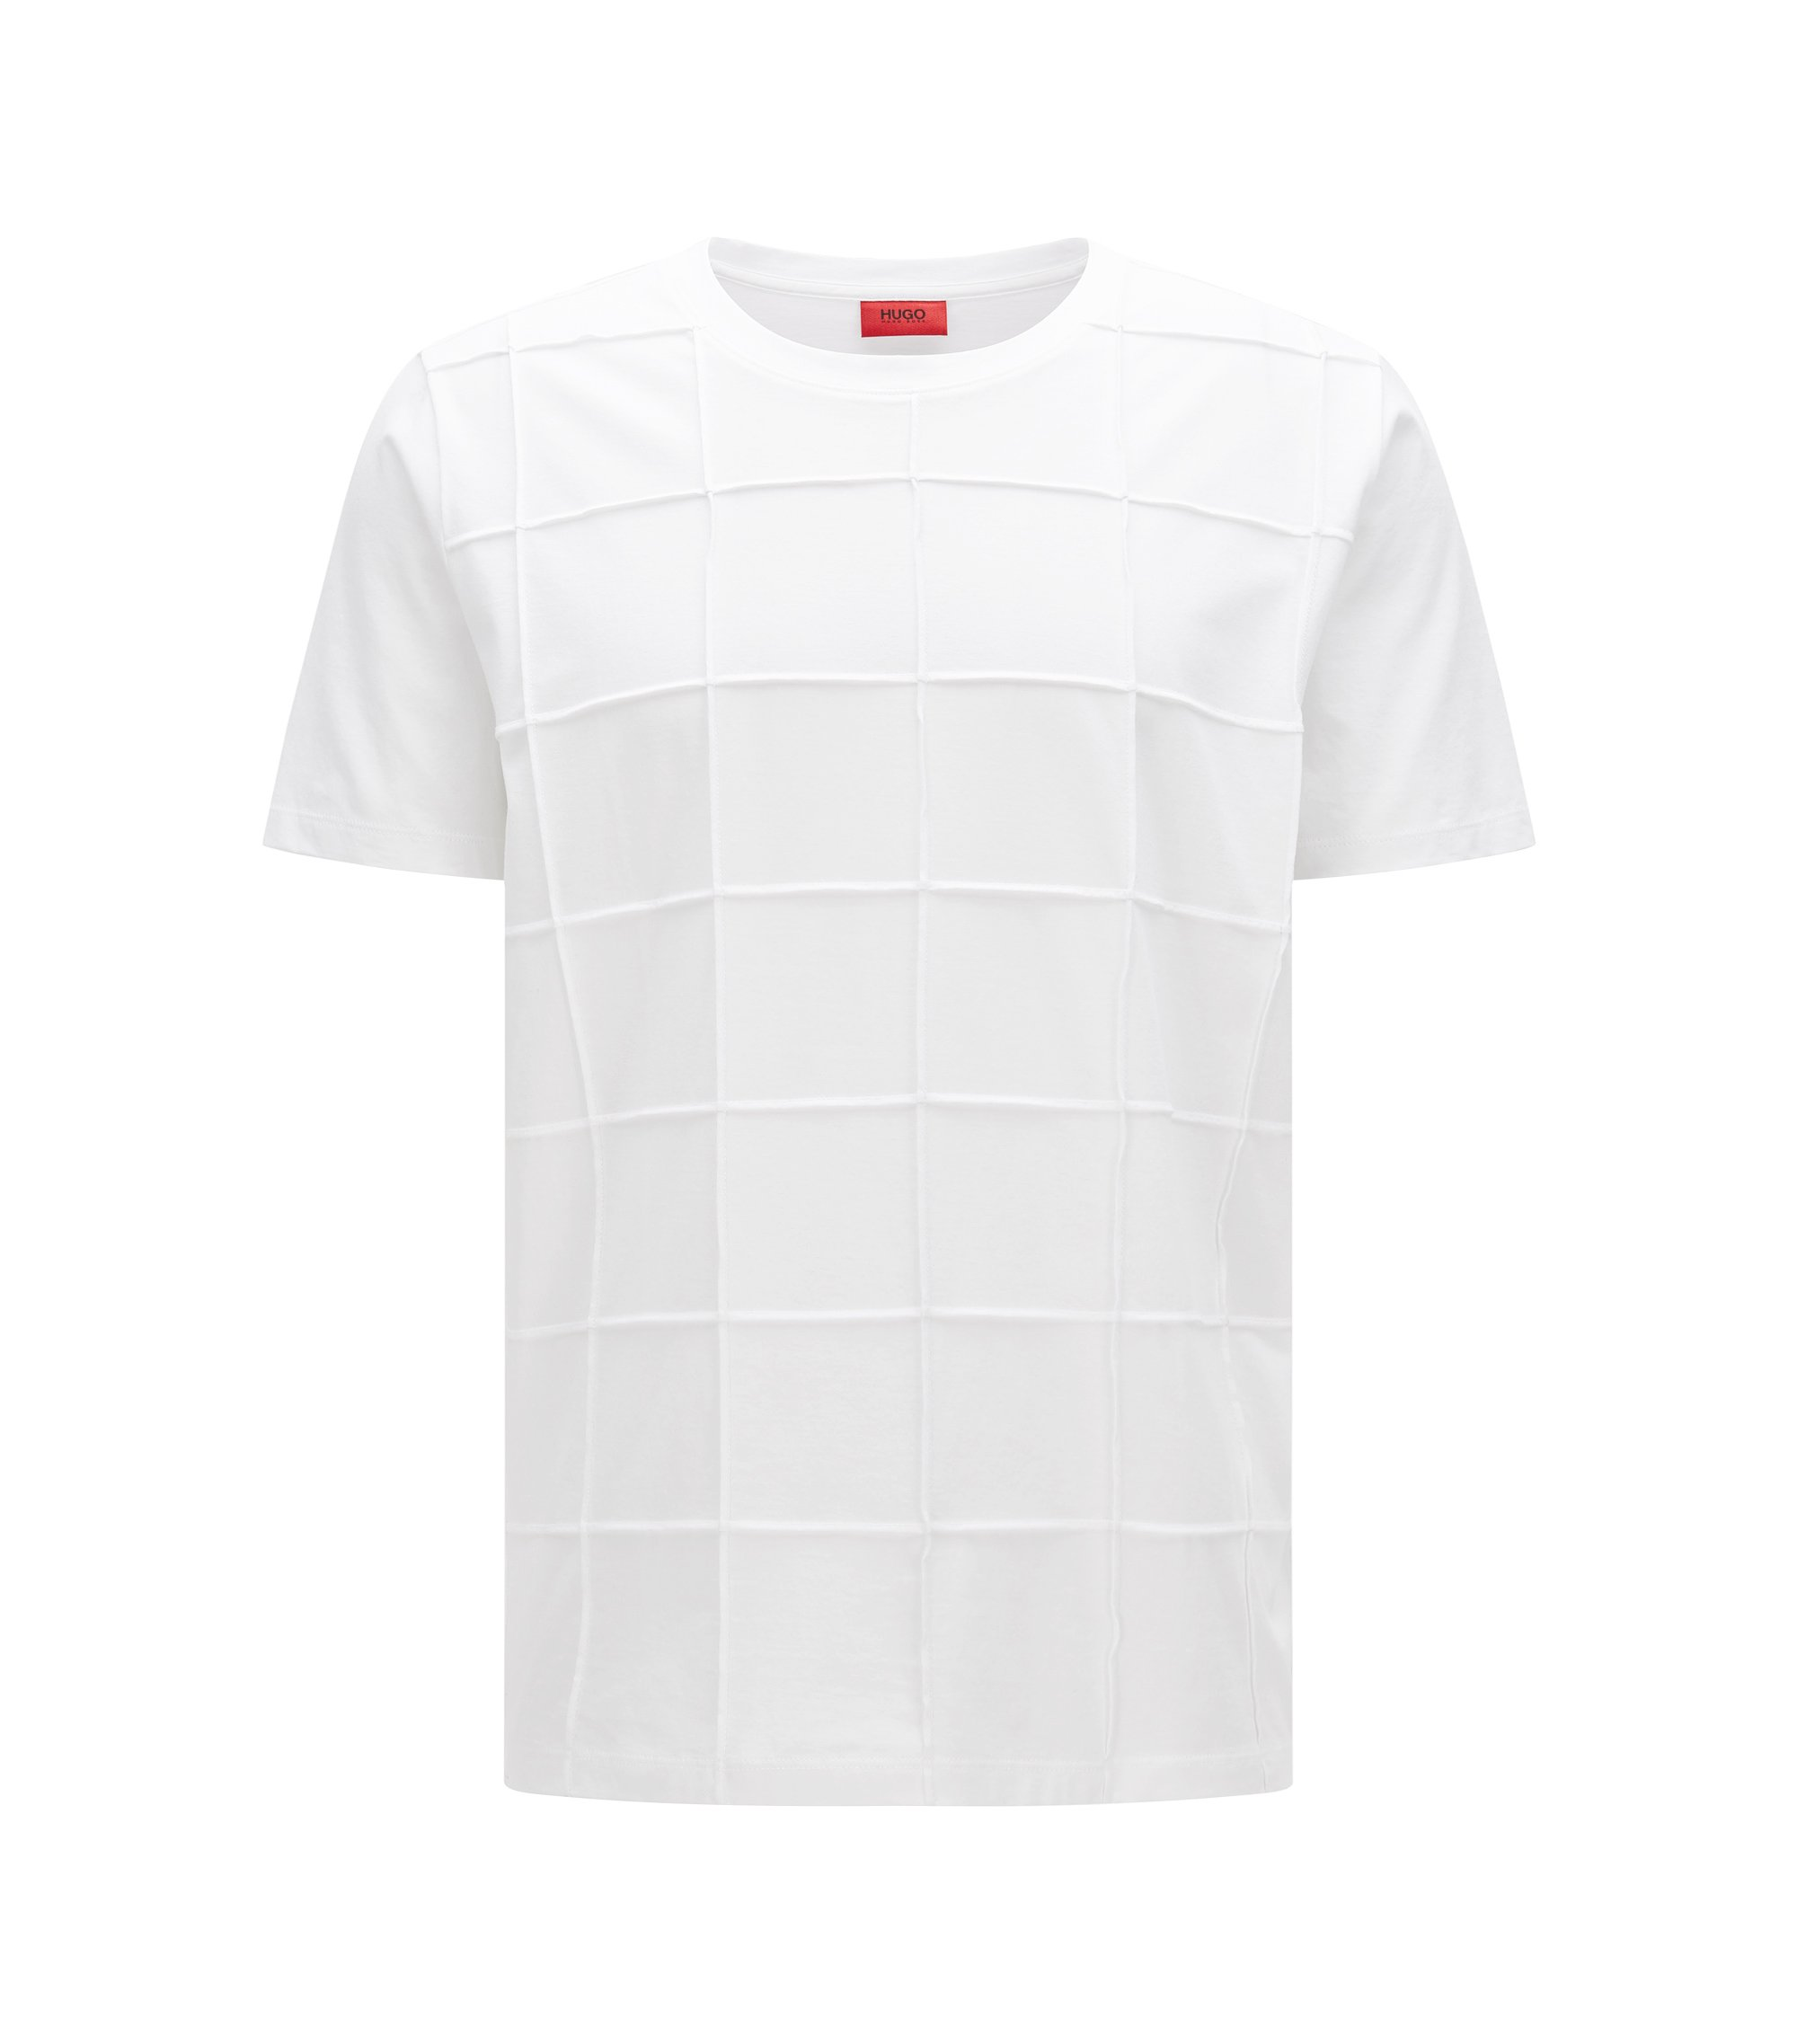 Cotton Pintucked T-Shirt | Devy, White